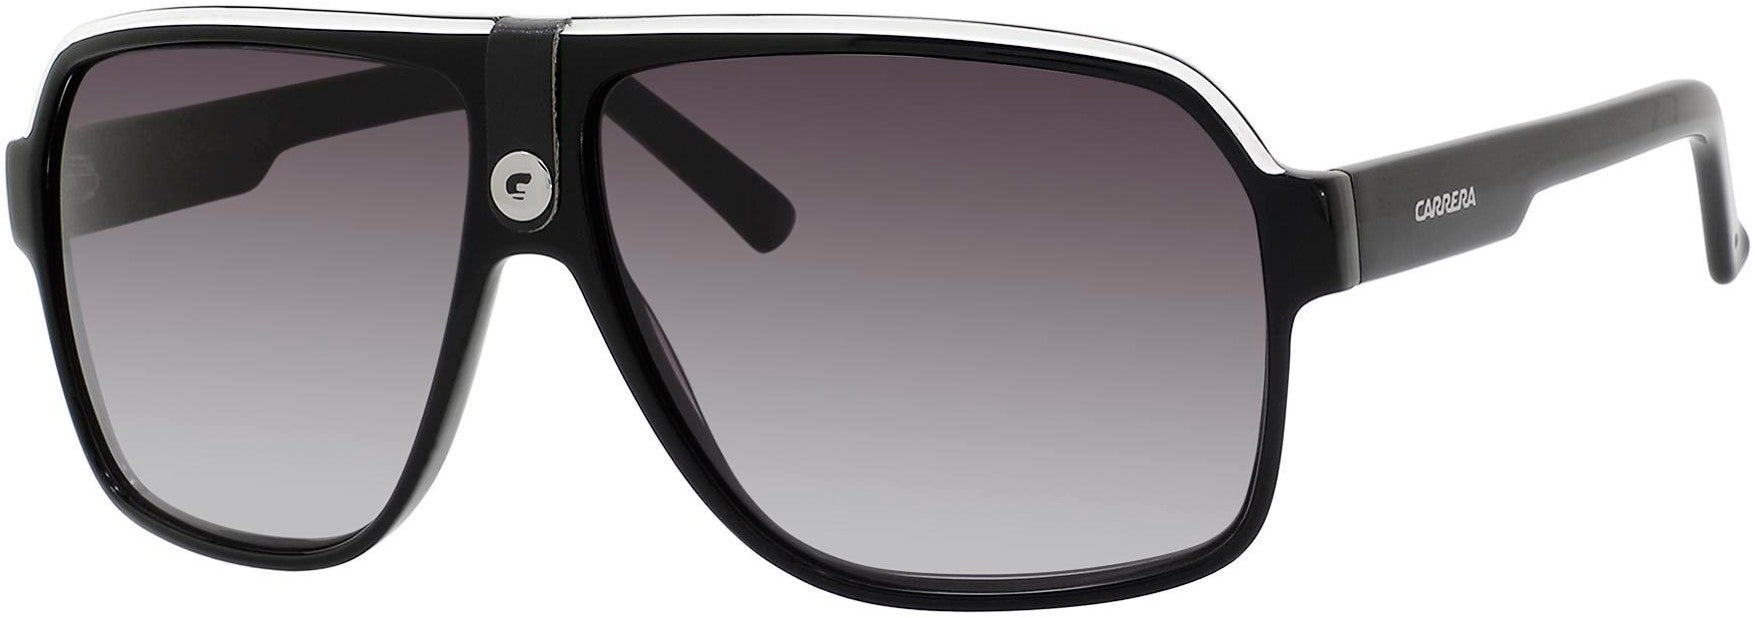 Adensco CARRERA 33/S Rectangular Sunglasses 08V6-08V6  Black Crystal Gray (9O Dark Gray Gradient)